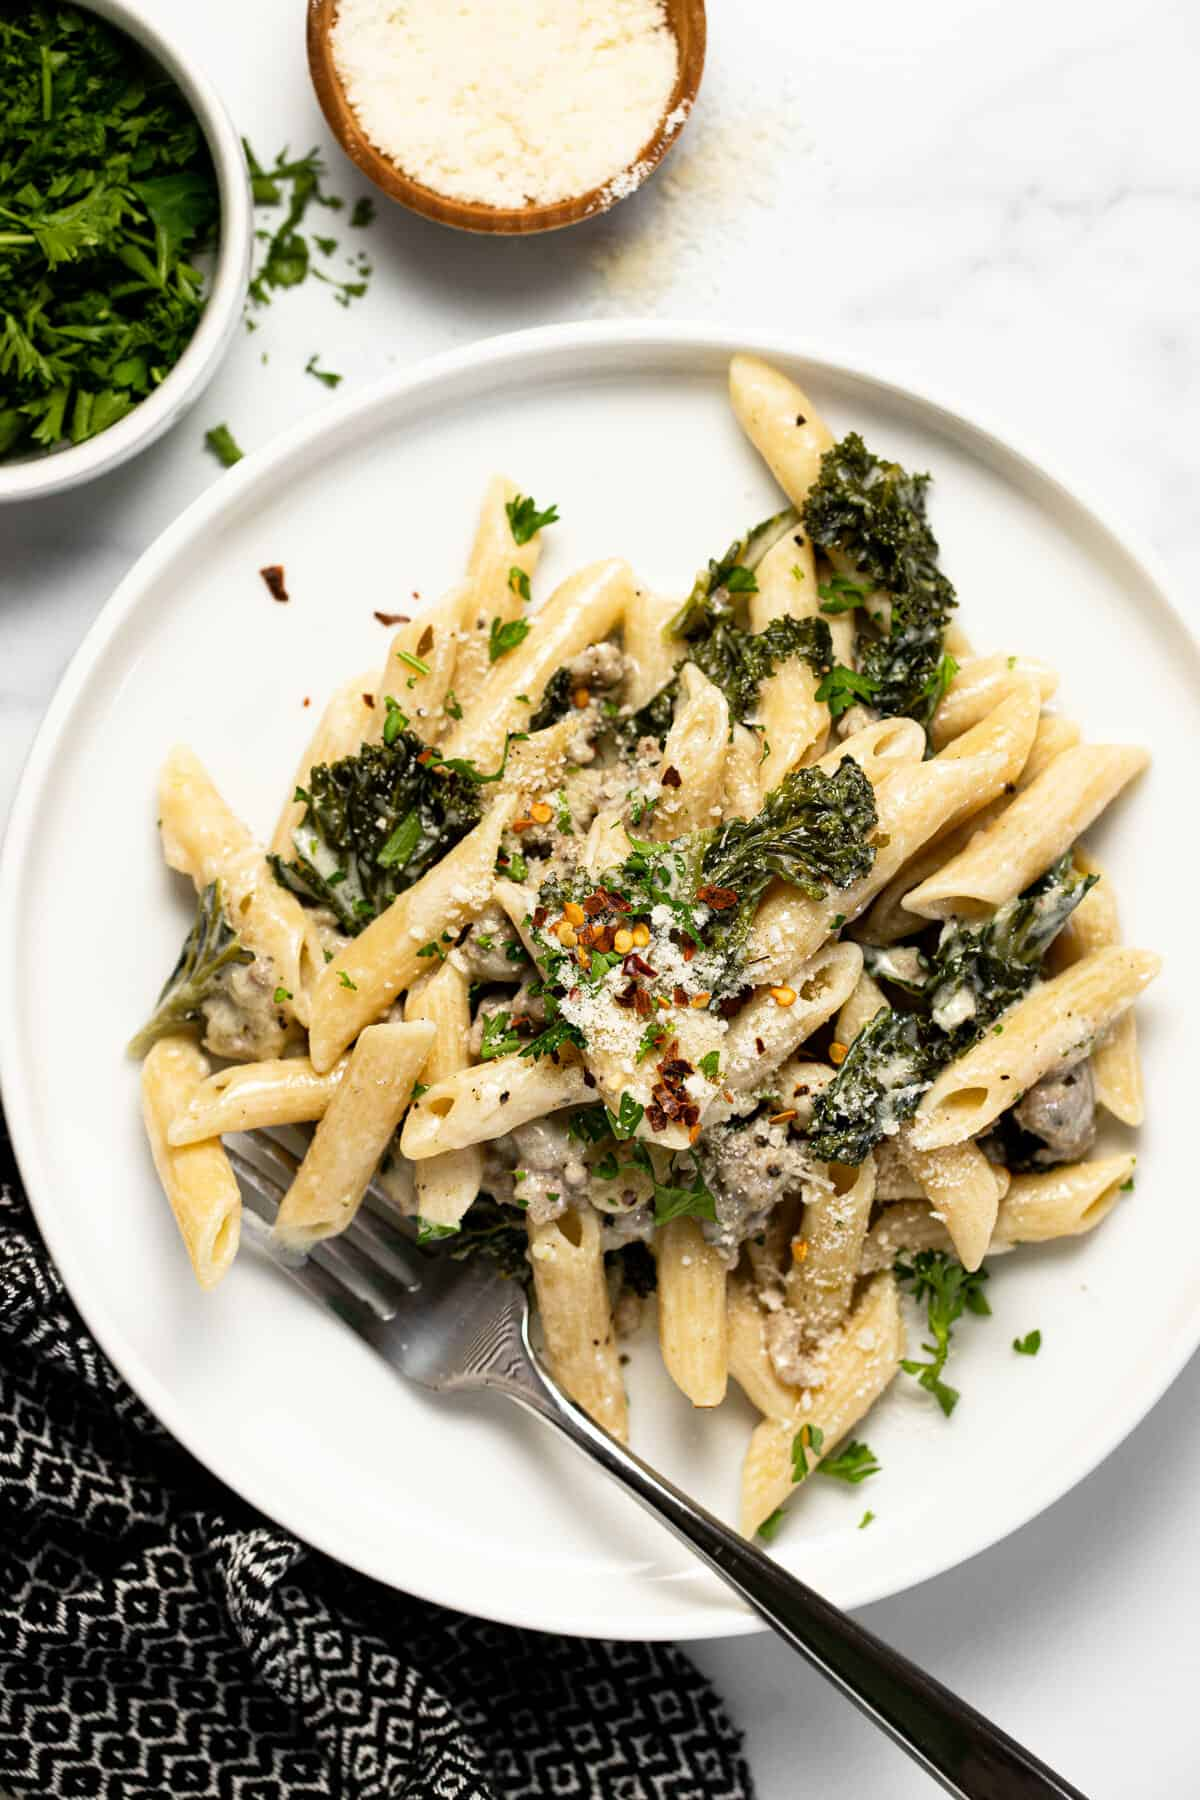 White plate filled with penne pasta in cream sauce with sausage and kale